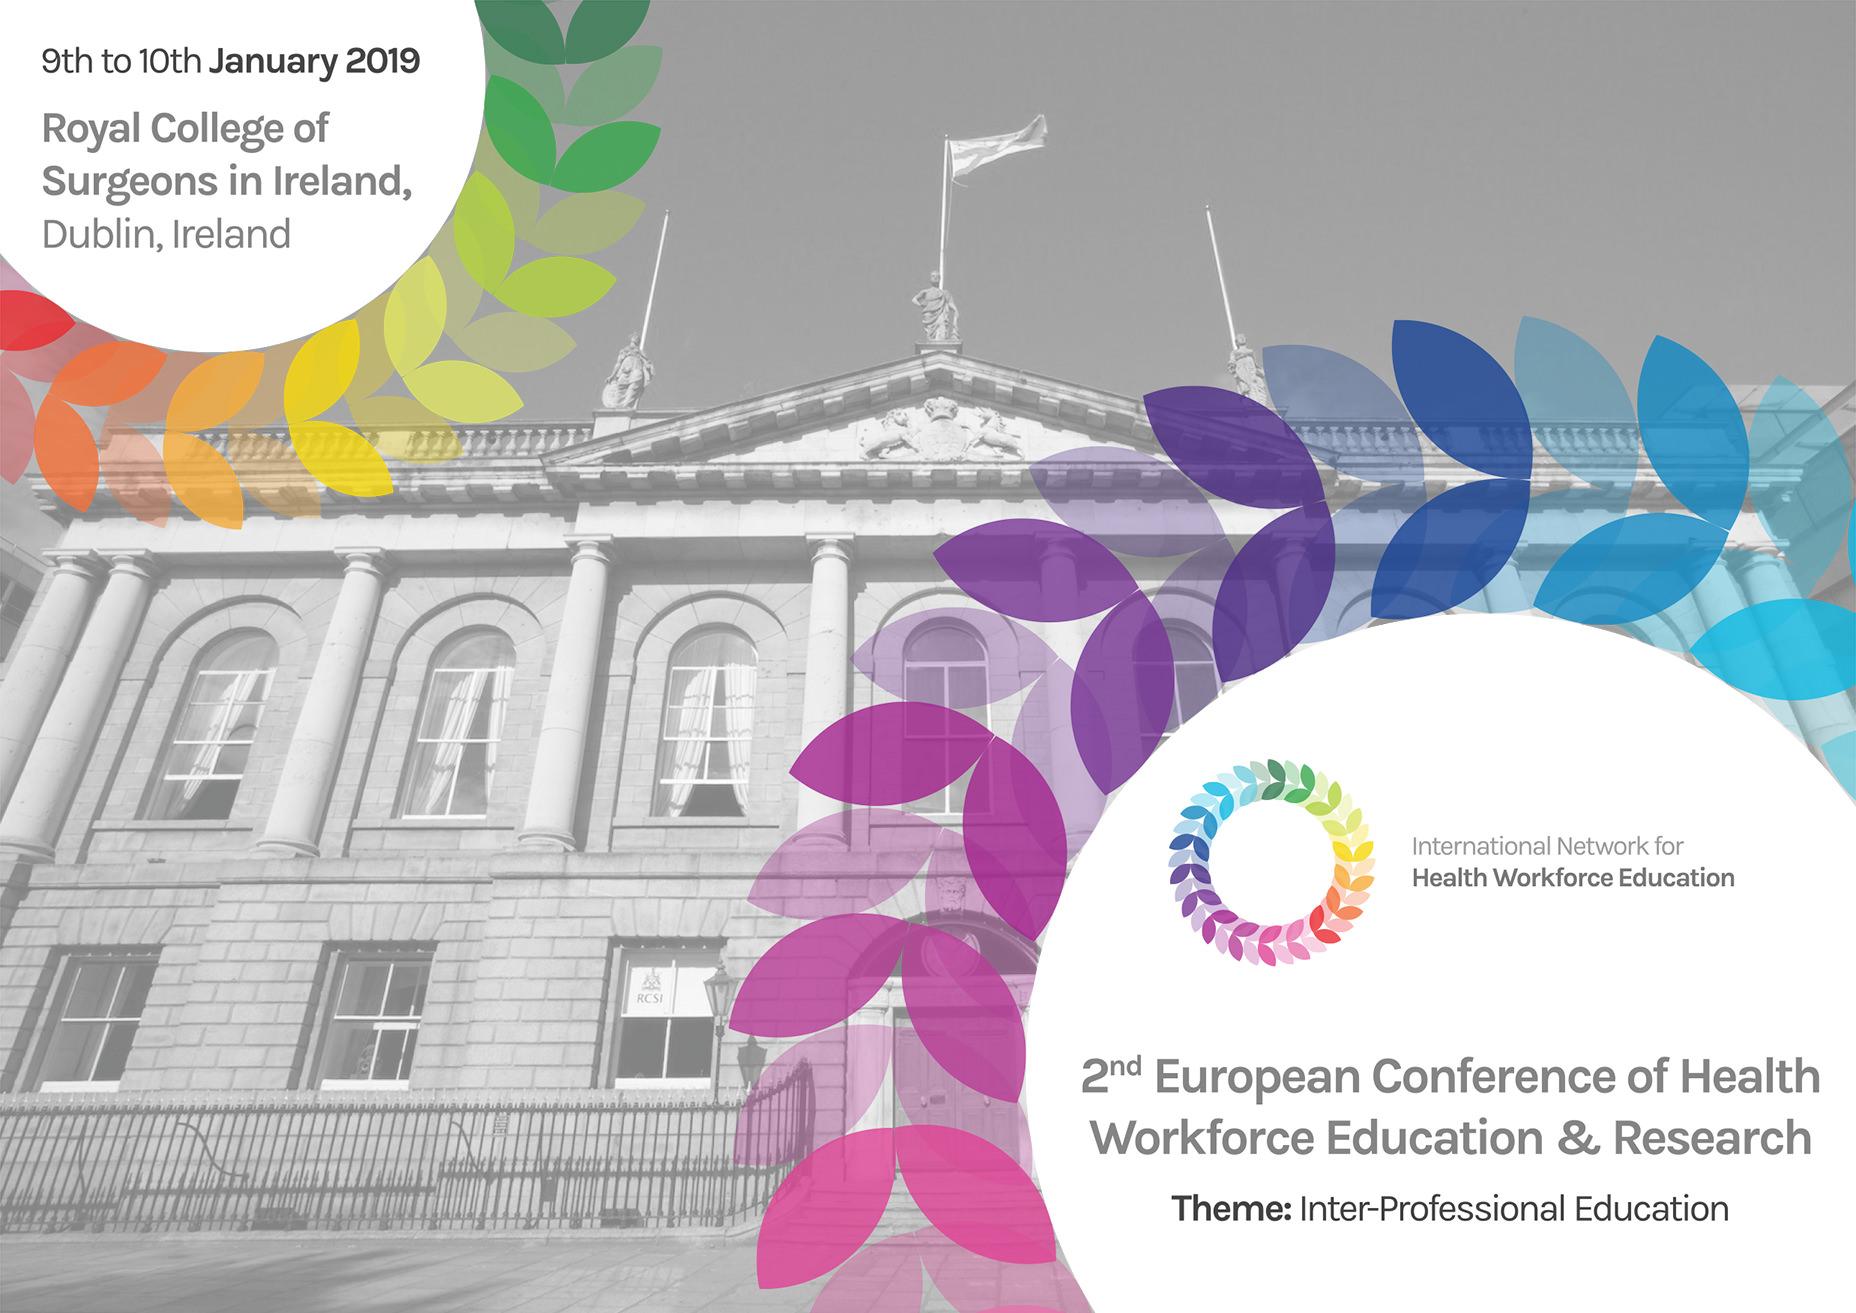 Dublin 2019 | International Network for Health Workforce